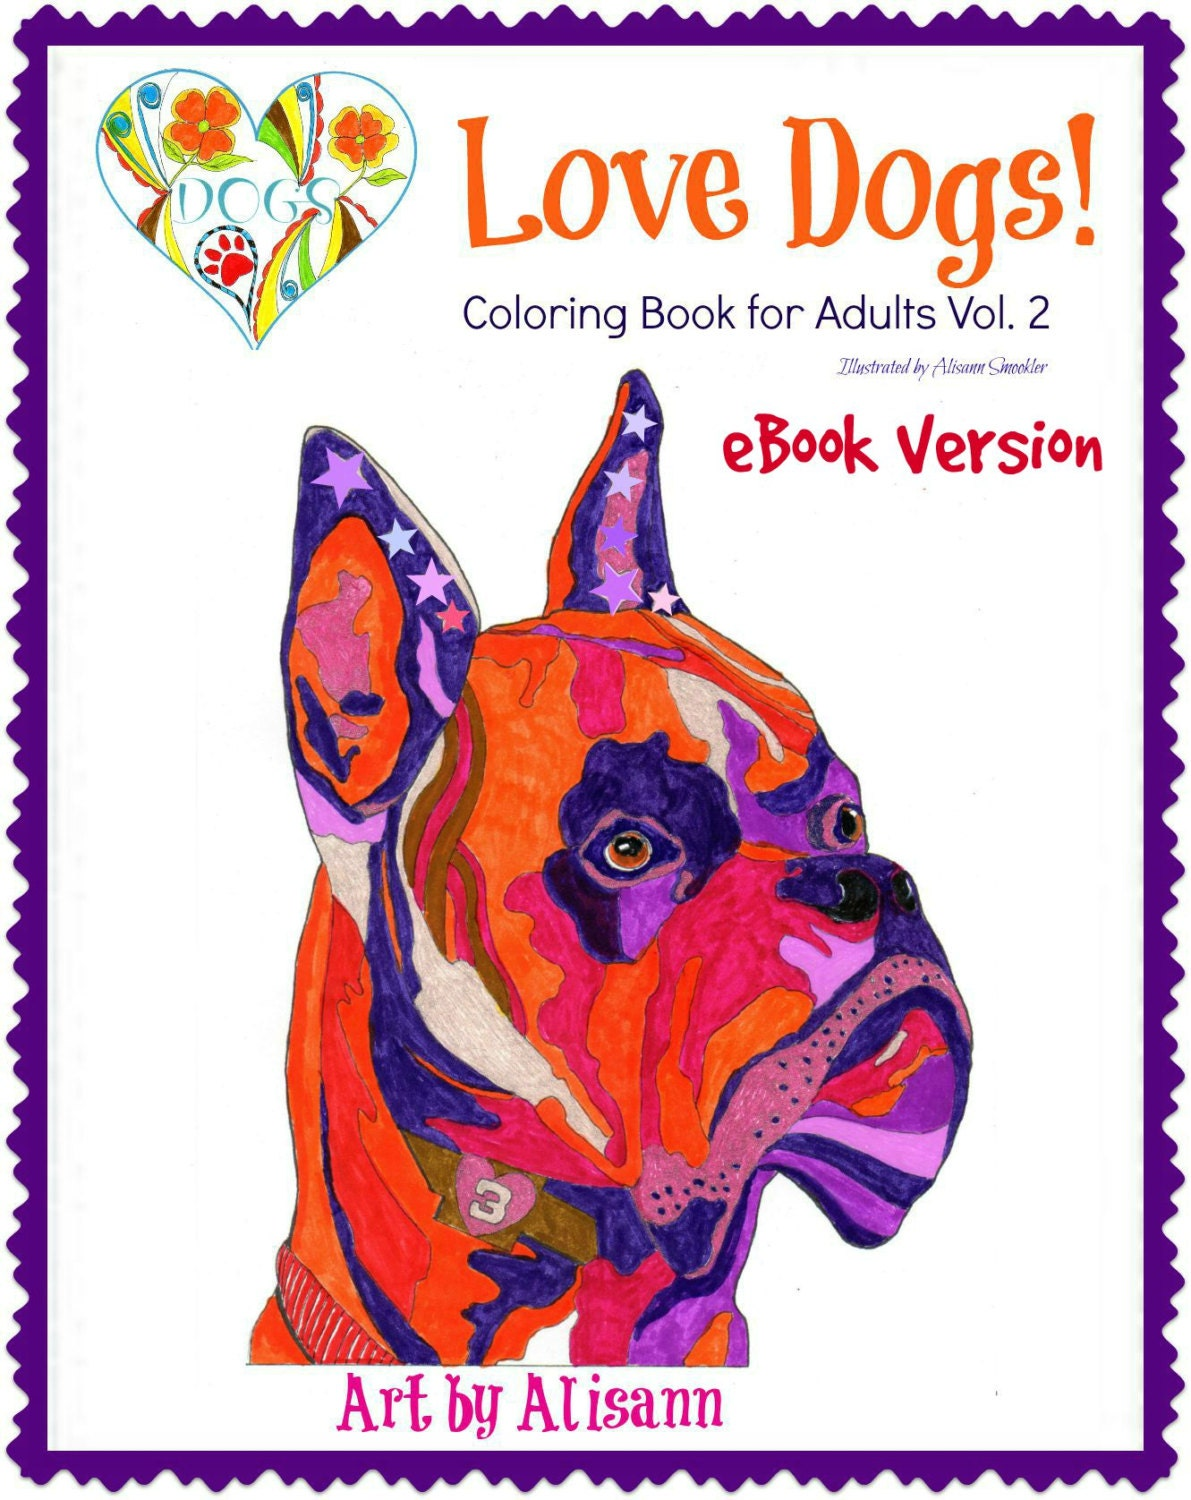 Coloring Book For Adults Ebook : eBook Love Dogs Coloring Book for Adults Vol. 2 Coloring